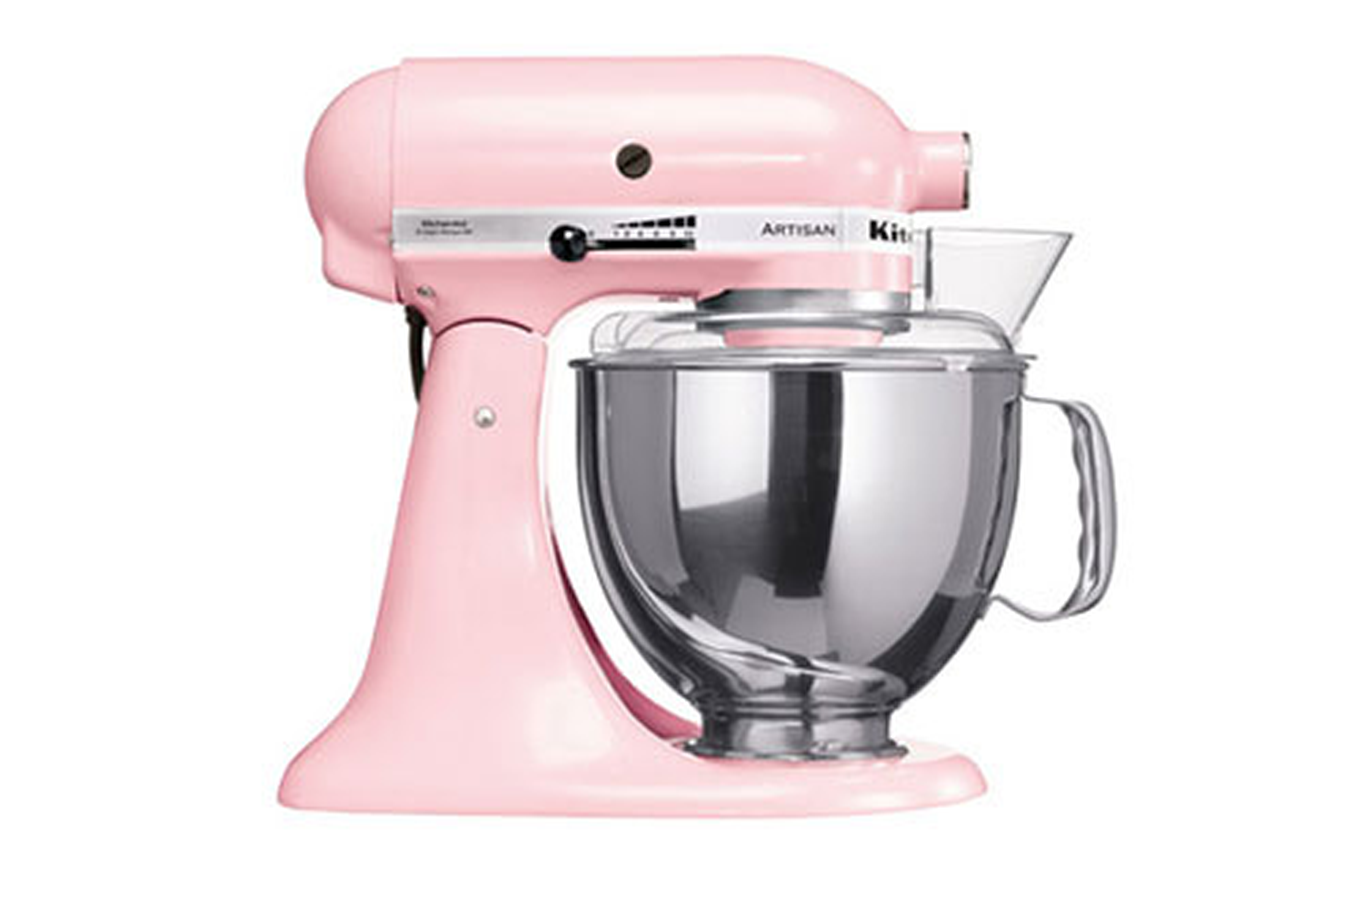 robot patissier kitchenaid 5ksm150 psepk rose 5 ksm 150 psepk rose 1581872 darty. Black Bedroom Furniture Sets. Home Design Ideas